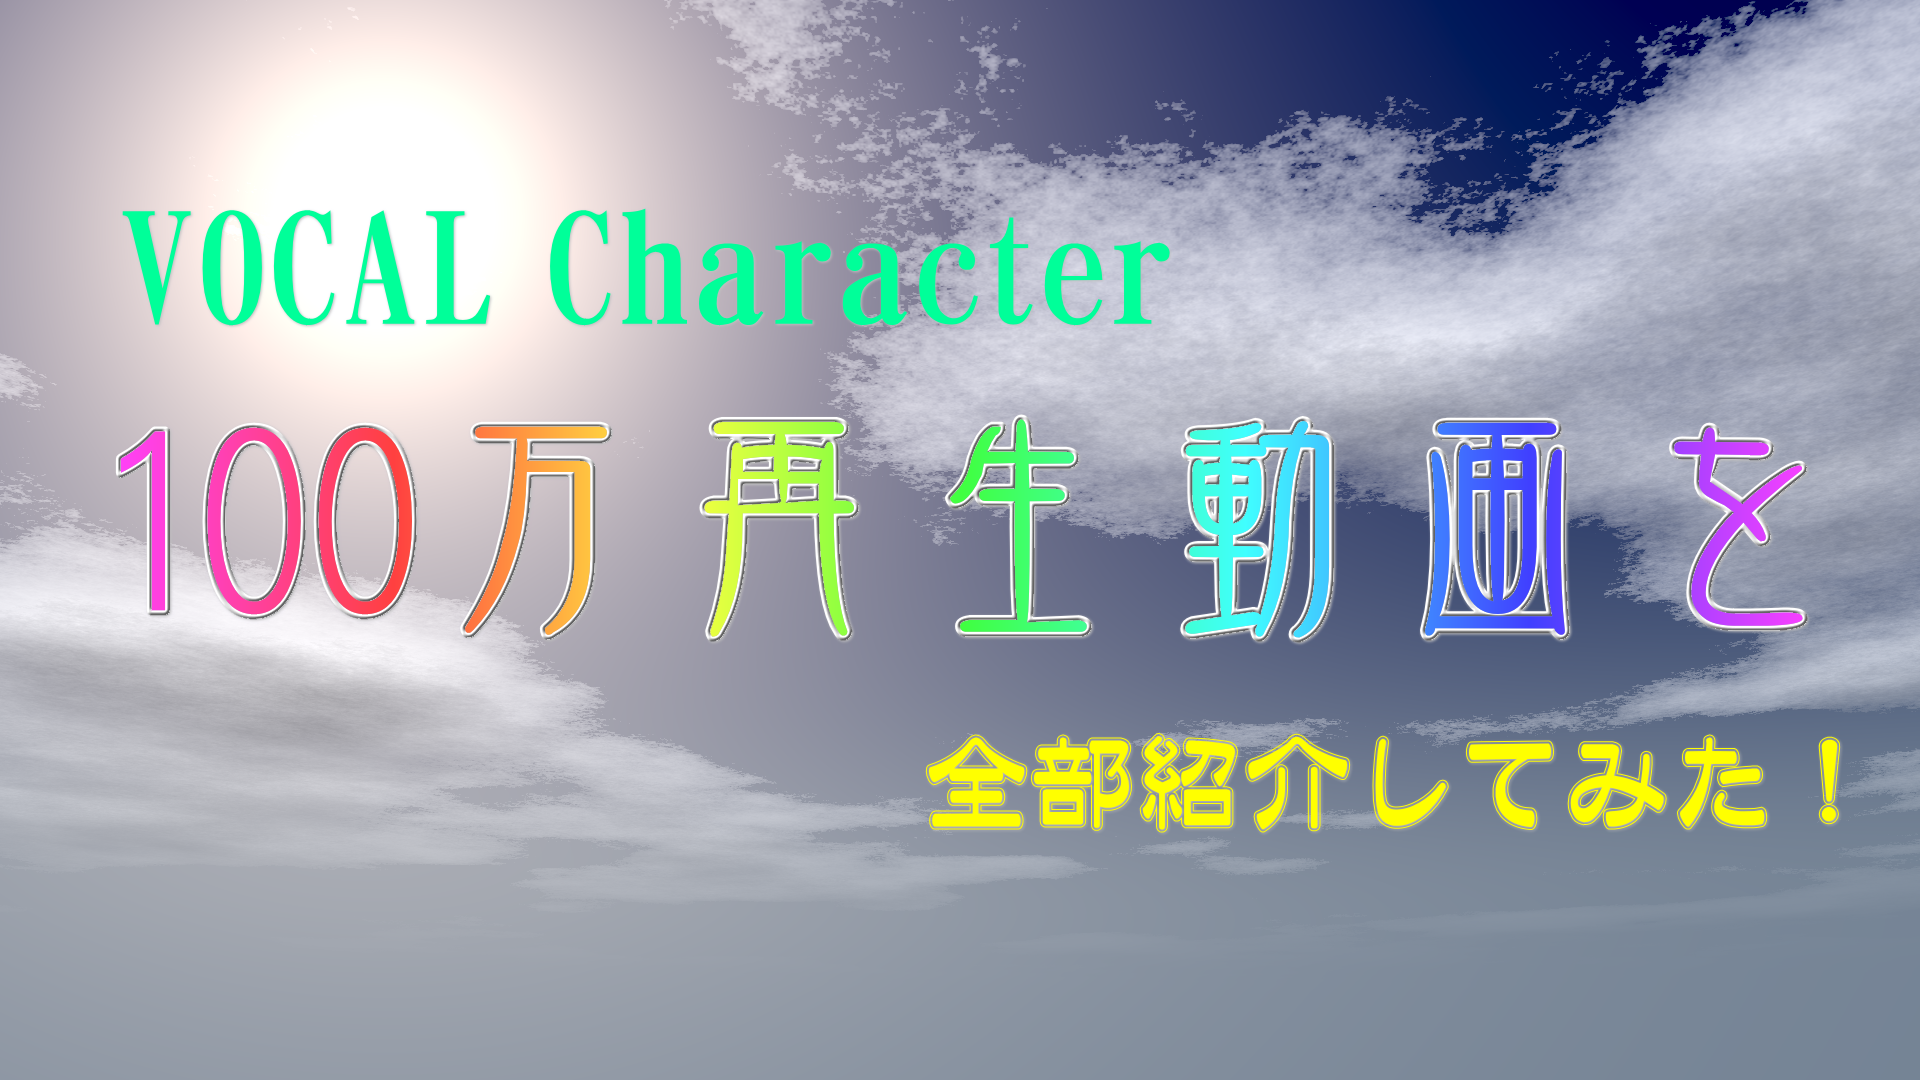 VOCAL Character100万再生動画を全部紹介してみた